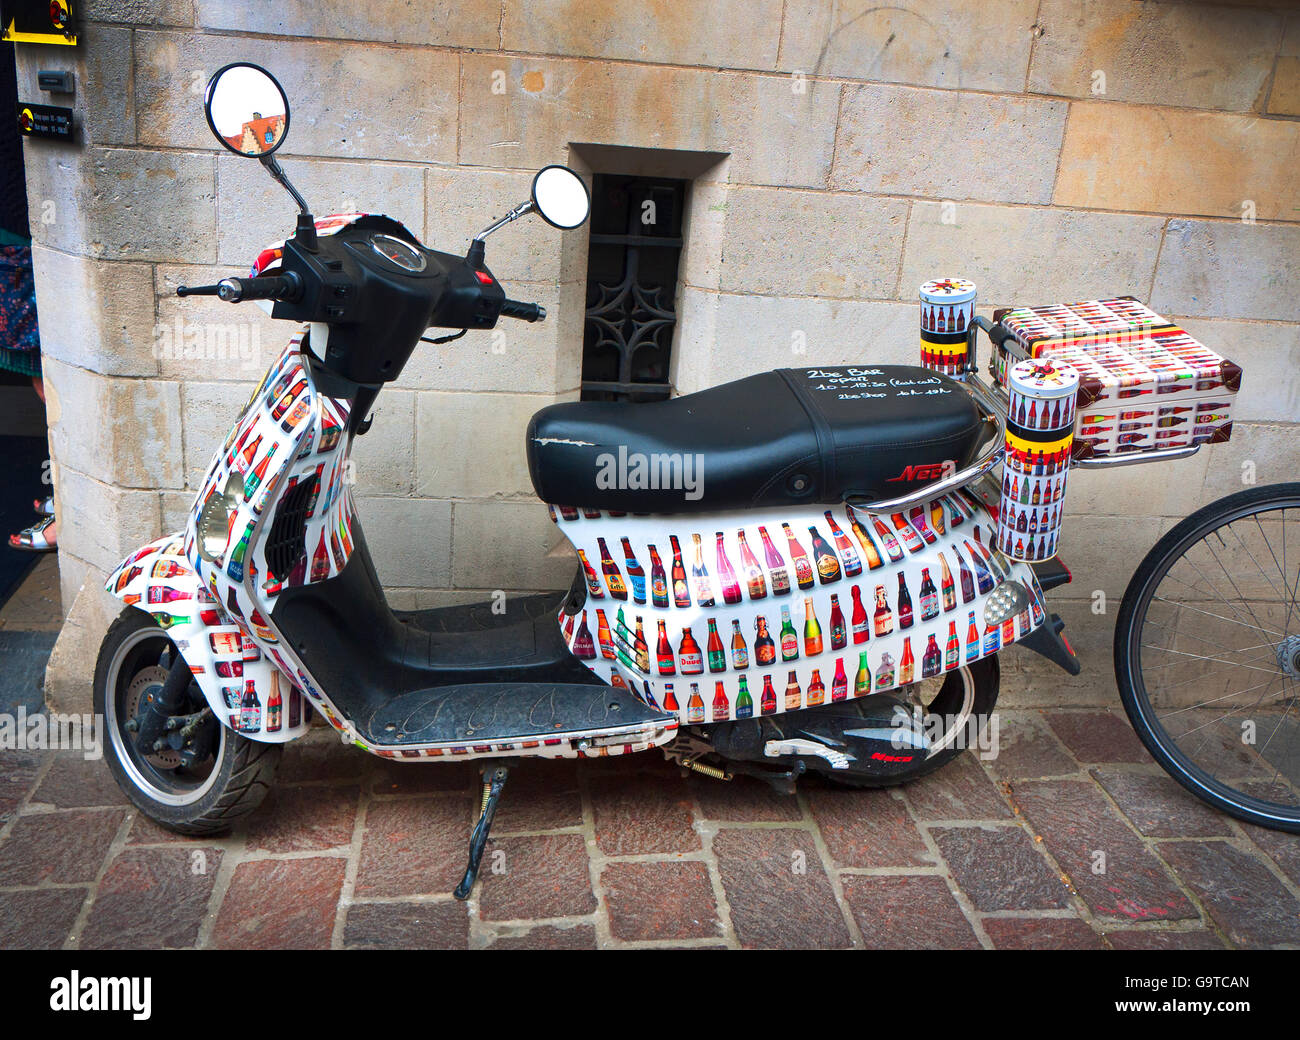 Promotional scooter decorated with pictures of beer bottles in Bruges, Belgium. - Stock Image